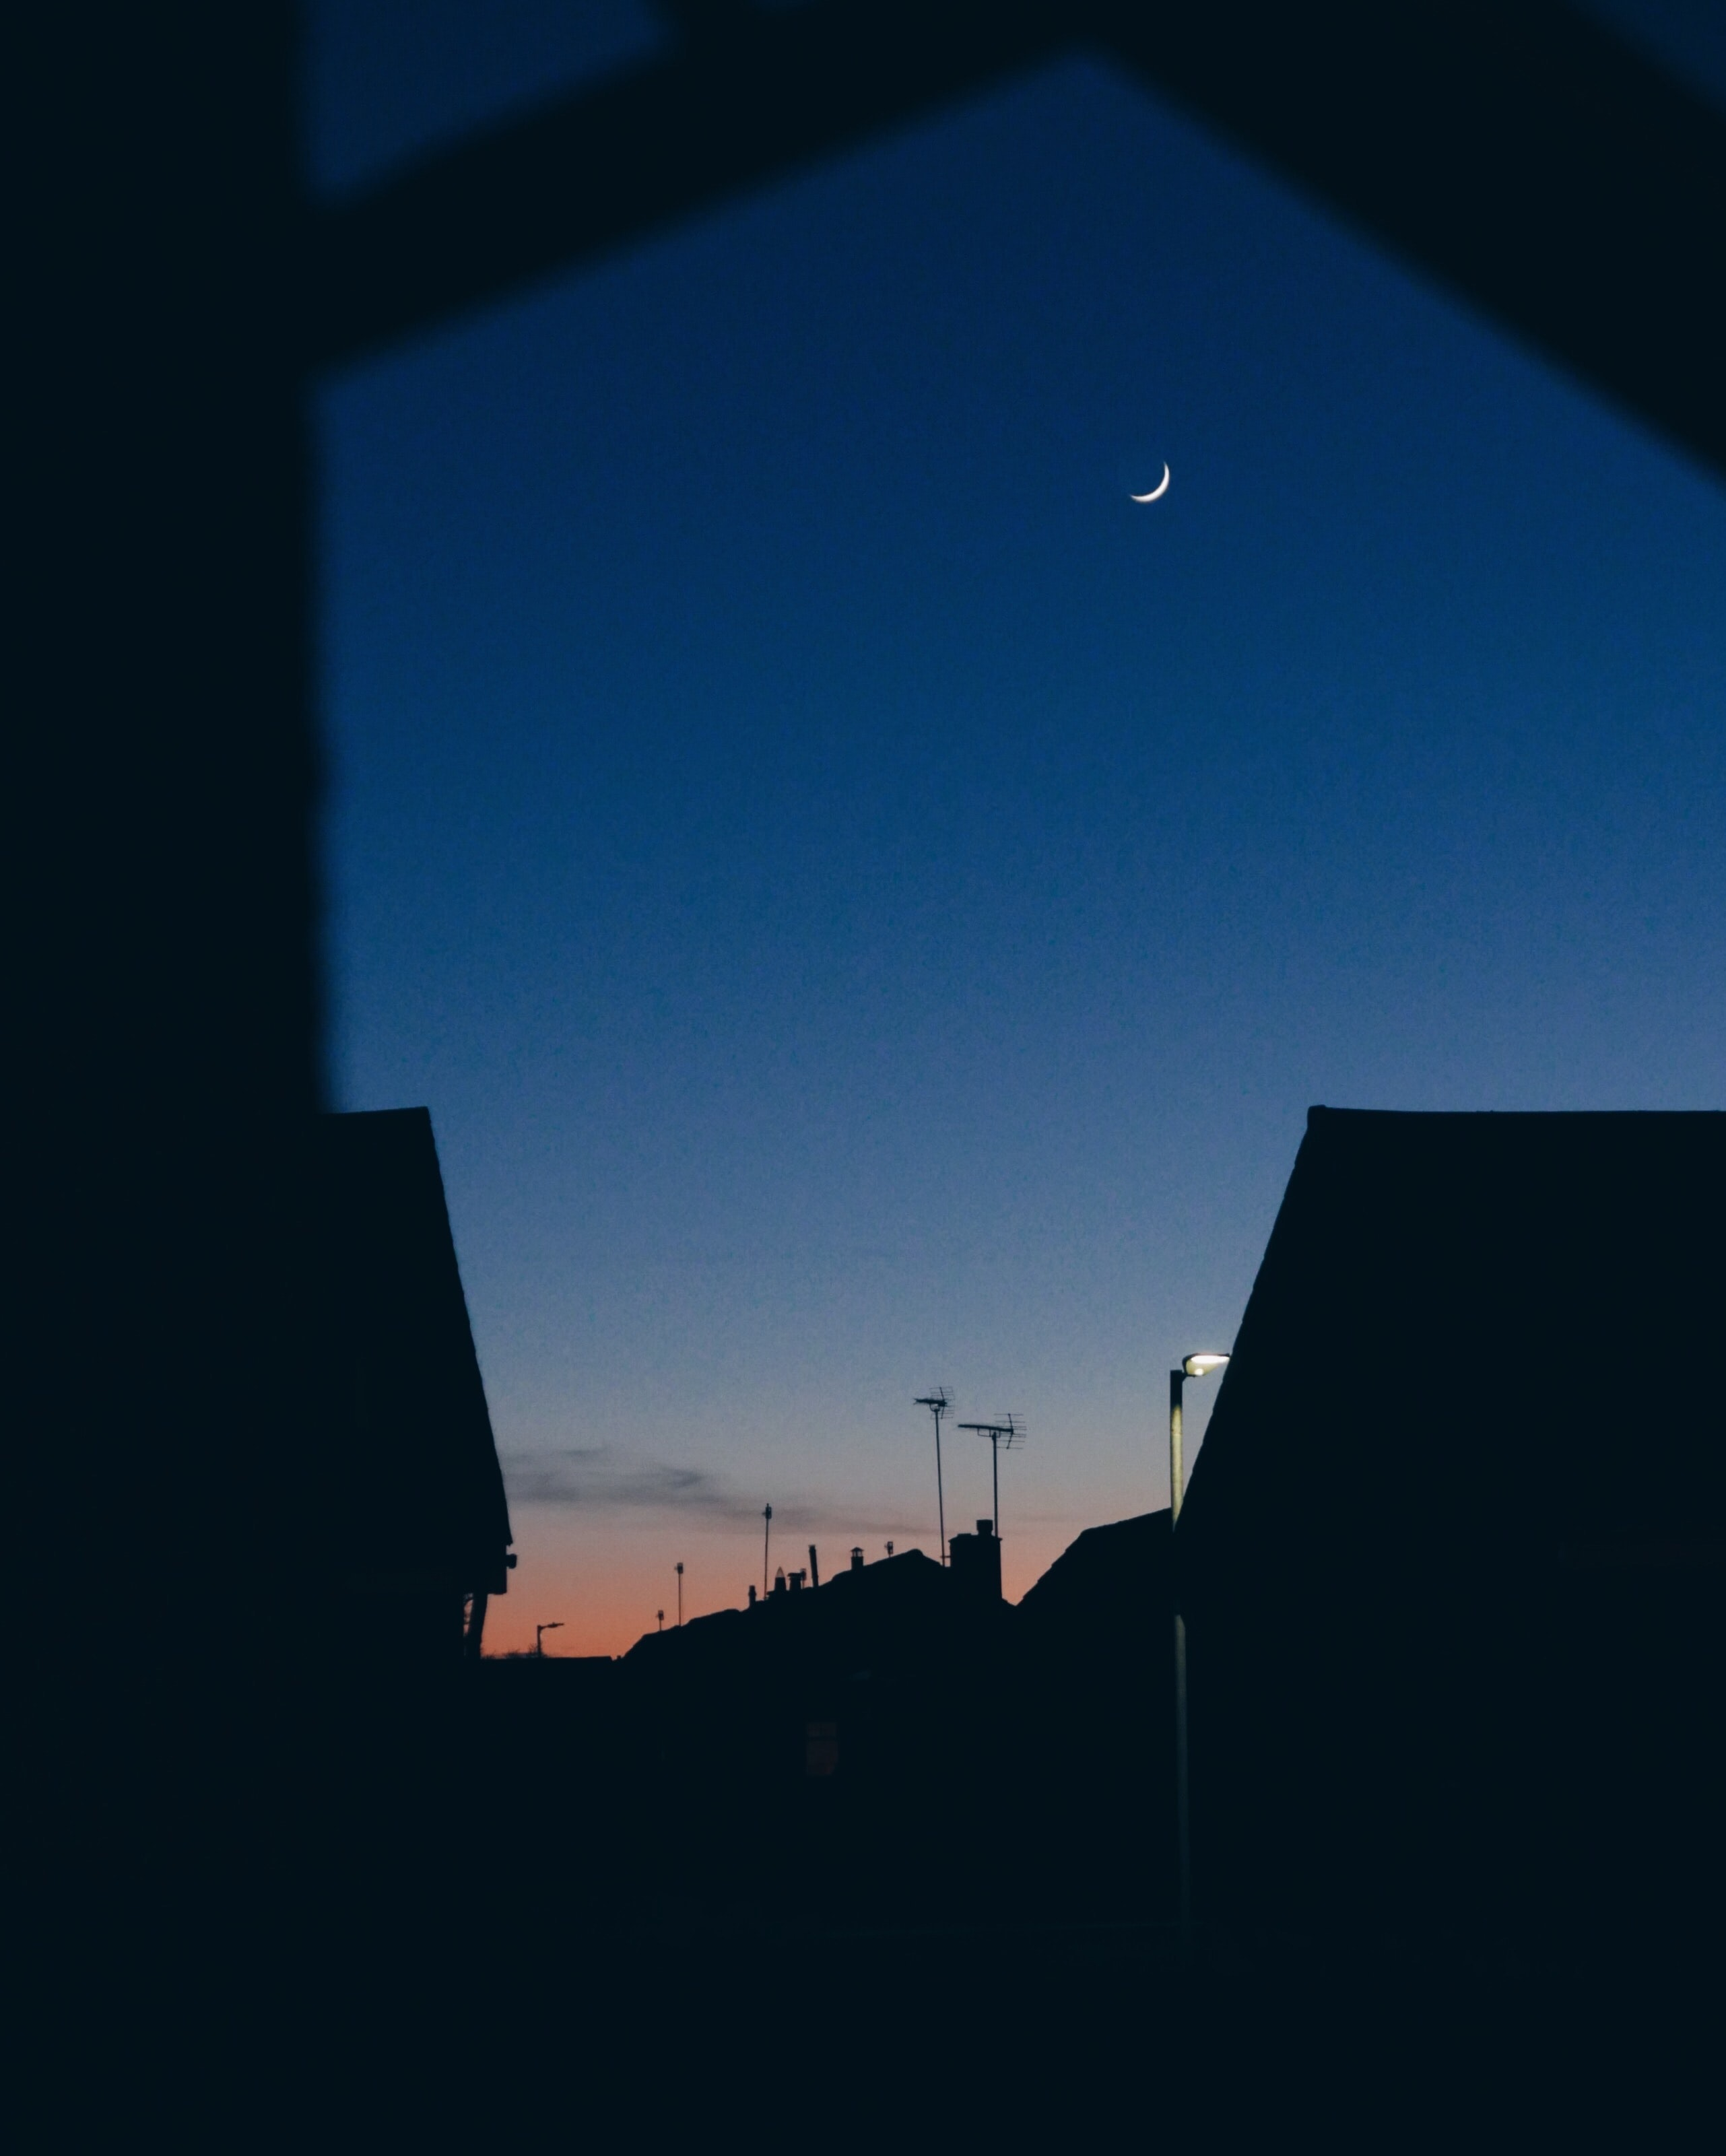 The crescent moon as seen through silhouetted houses in Troon at night.